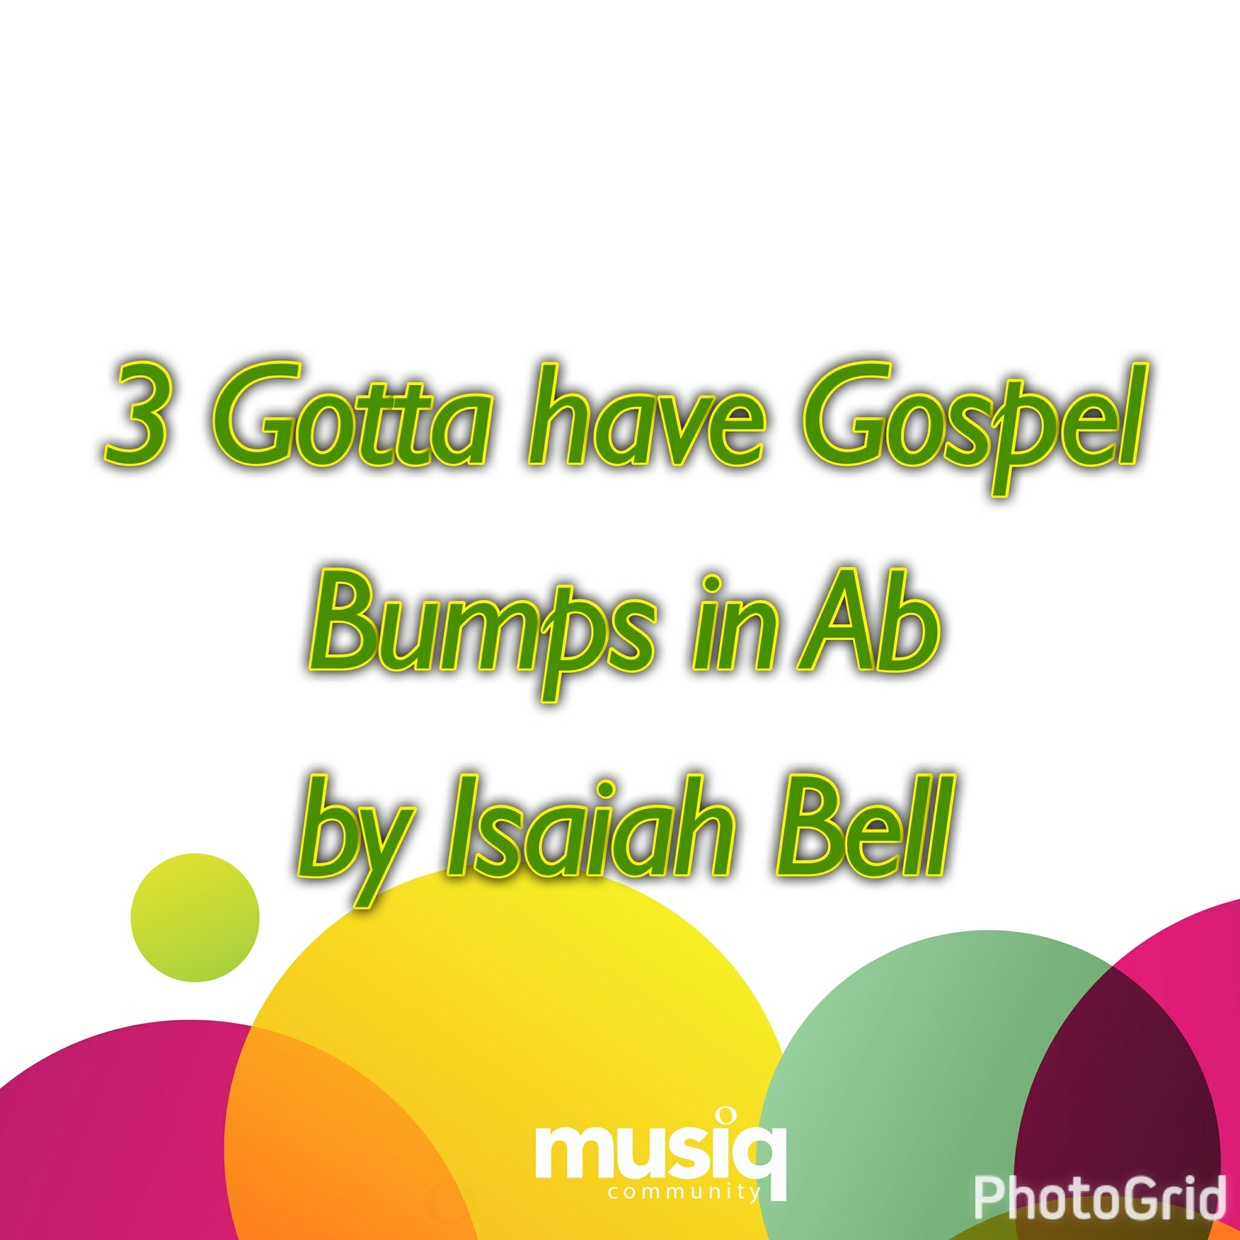 3 MUST HAVE Gospel Bumps in Ab